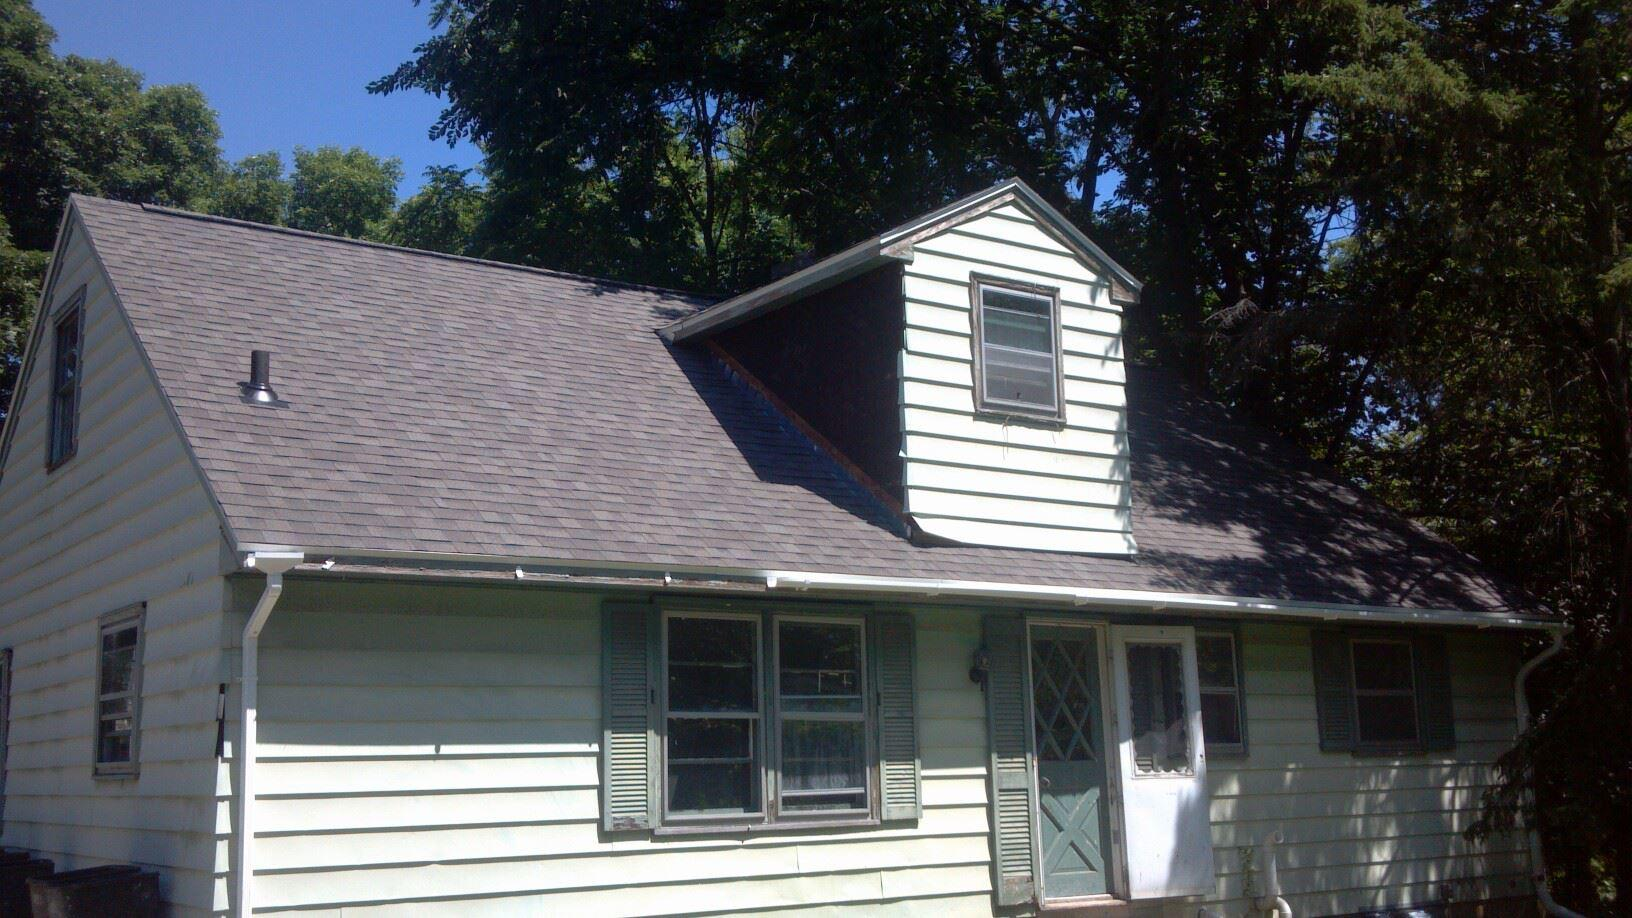 Roof Replacement in Madison, WI - After Photo